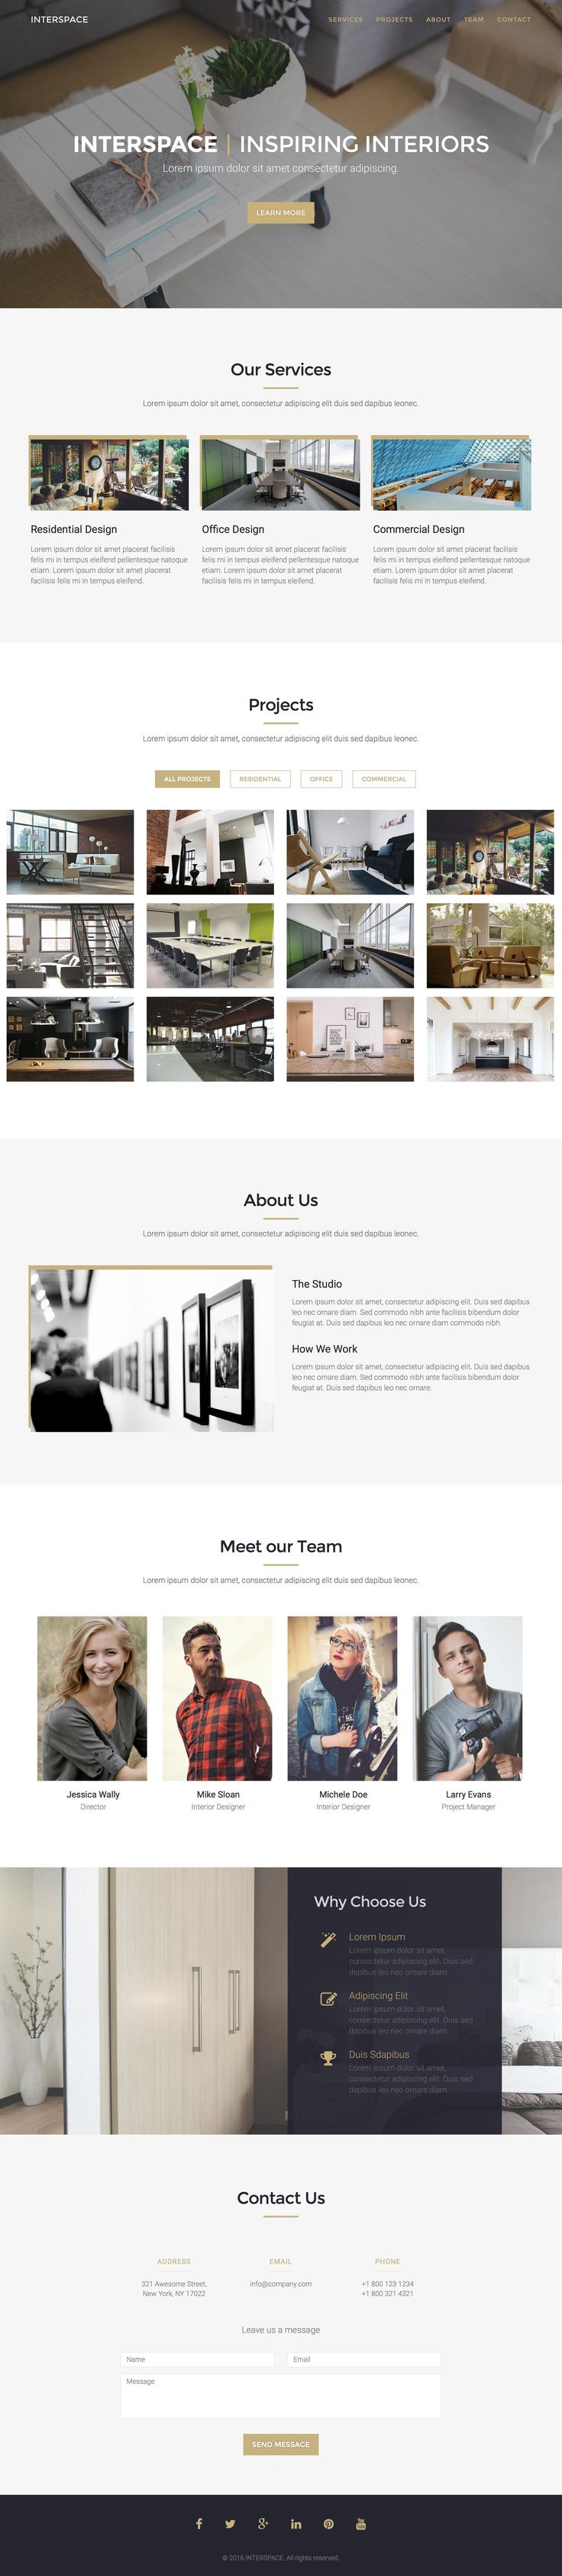 385 best One Page Website Templates images on Pinterest | Website ...